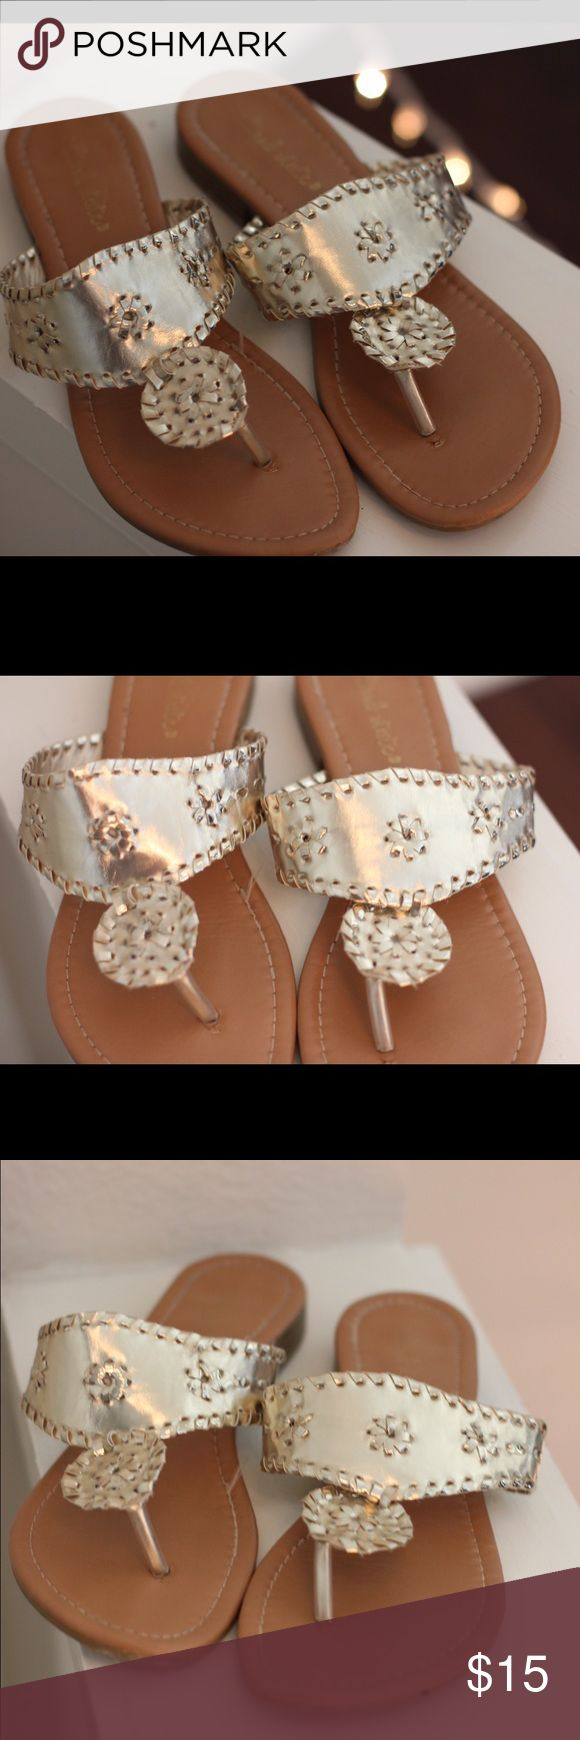 Jack Rogers look alike These are look alike Jack Rogers. Worn only twice! In perfect condition! They are a beautiful gold and look great with any outfit. Jack Rogers Shoes Sandals